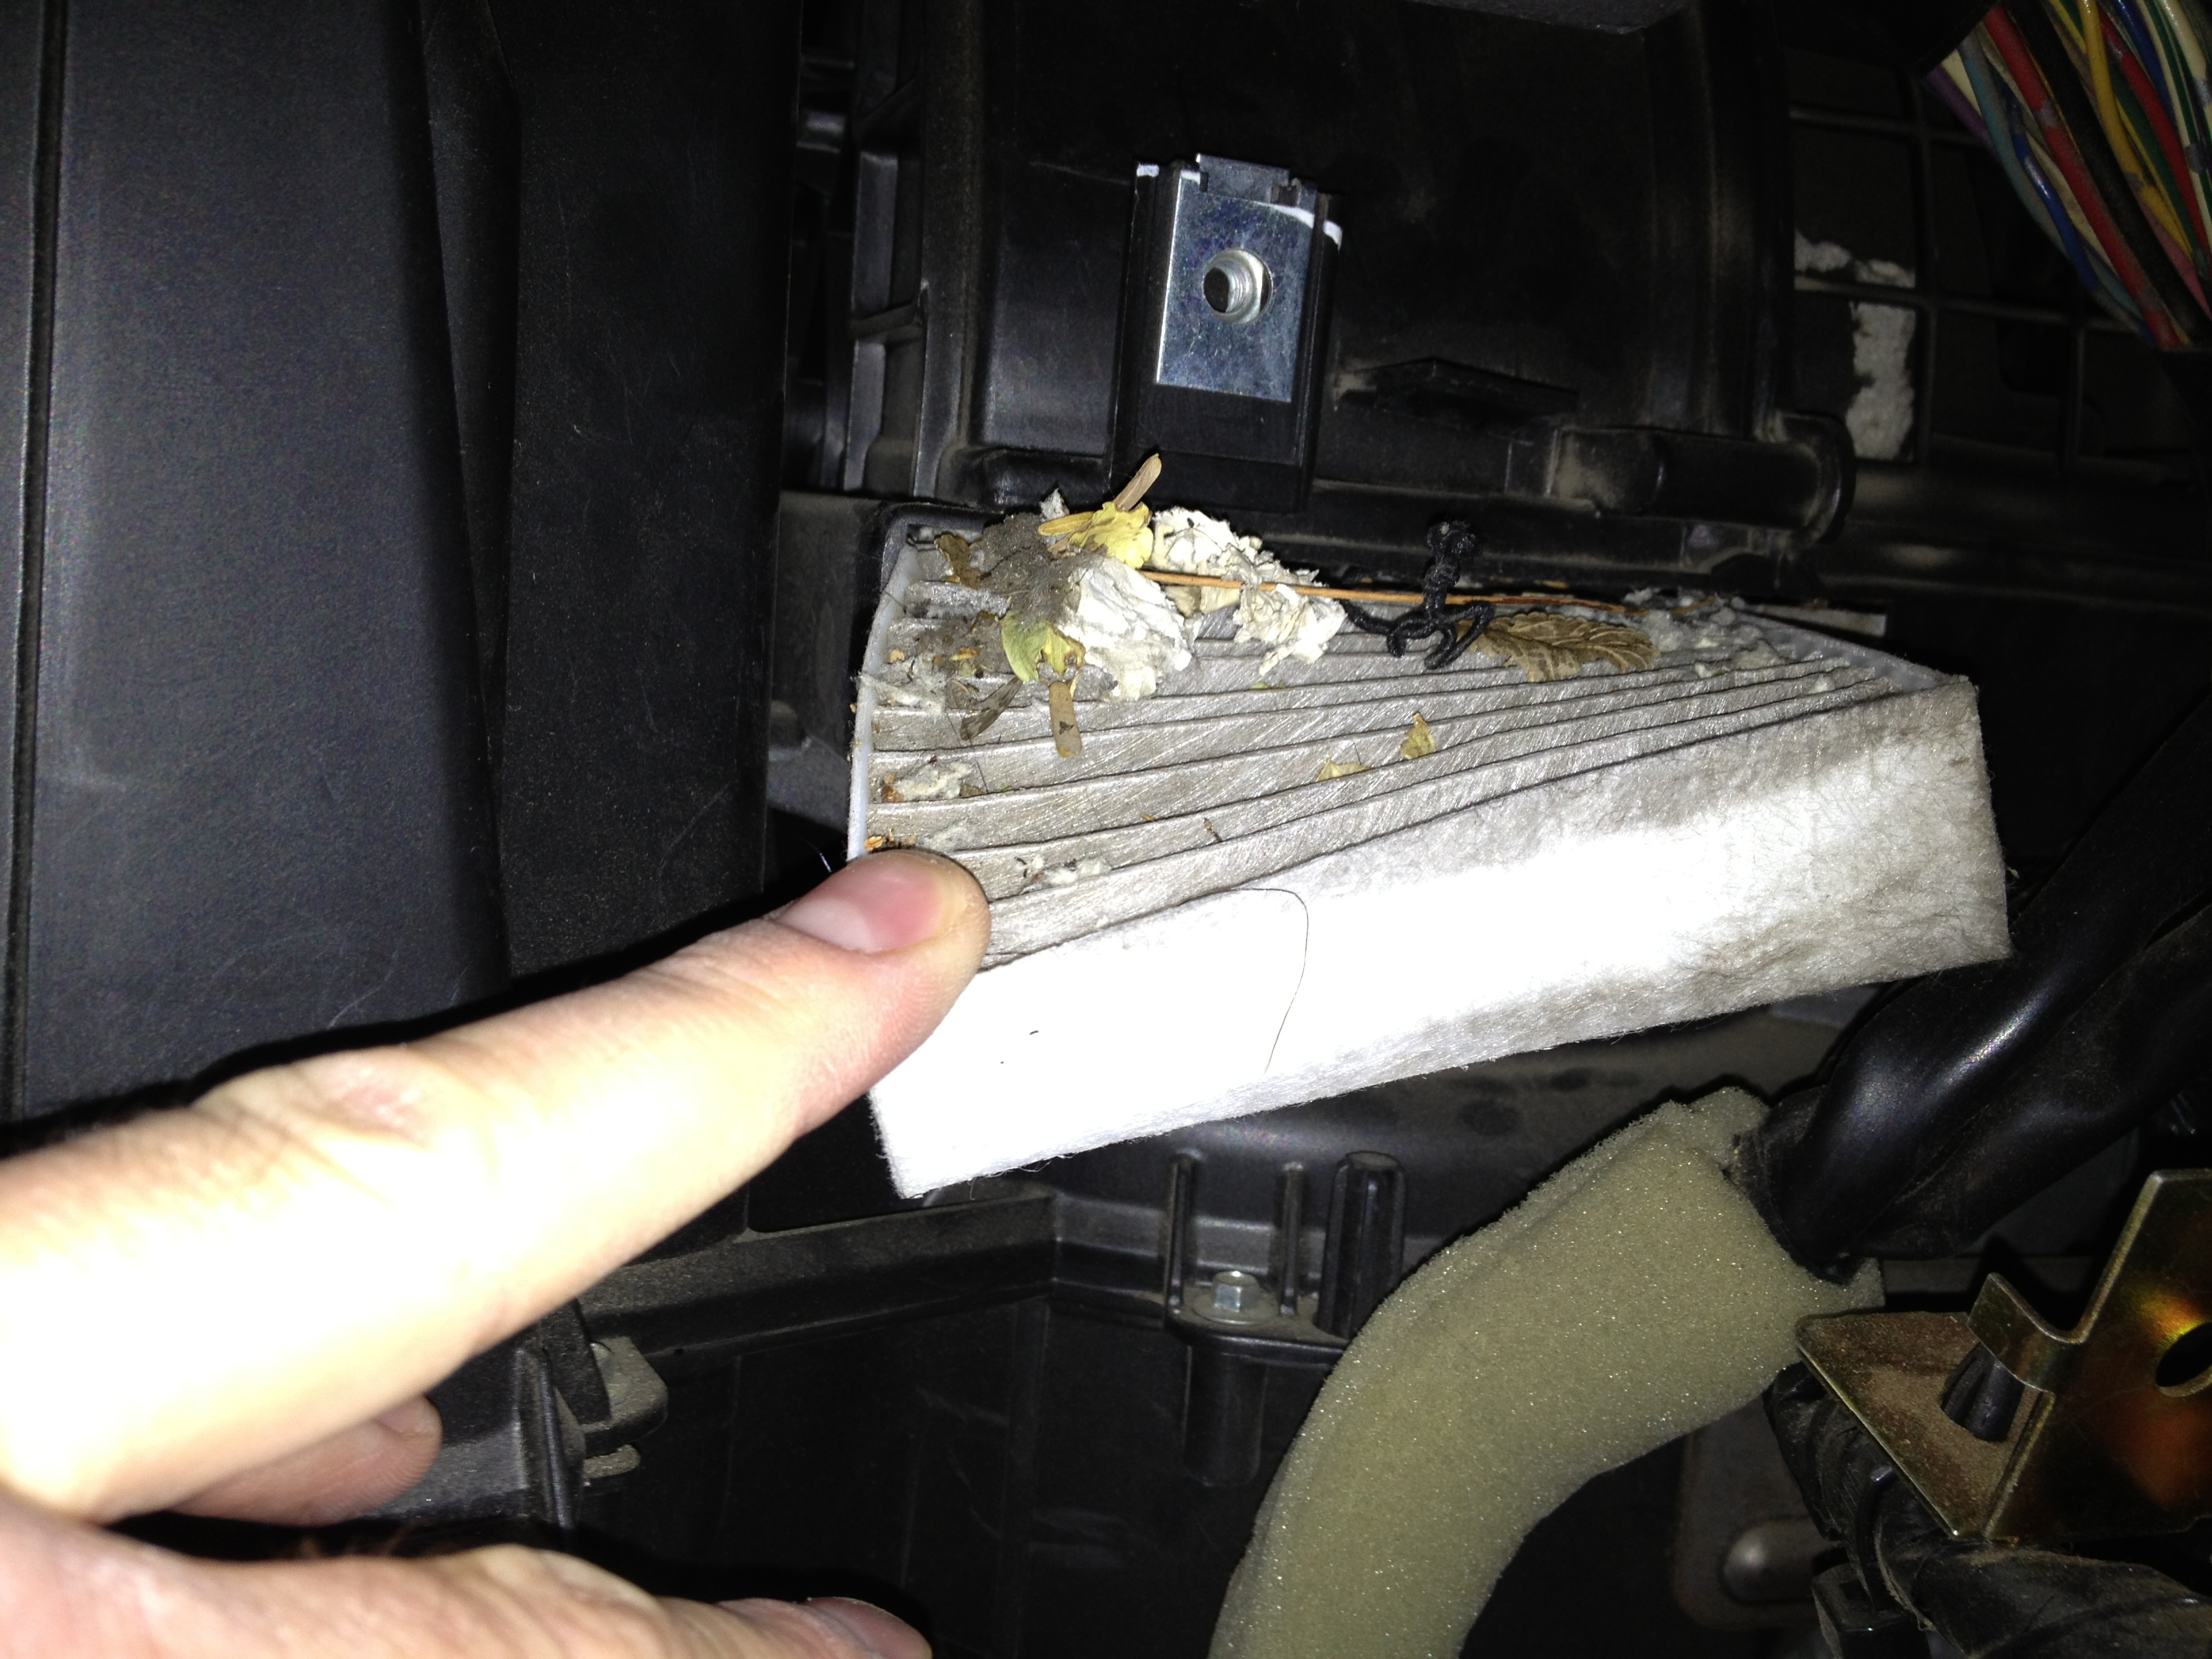 Captivating Dirty Cabin Air Filter